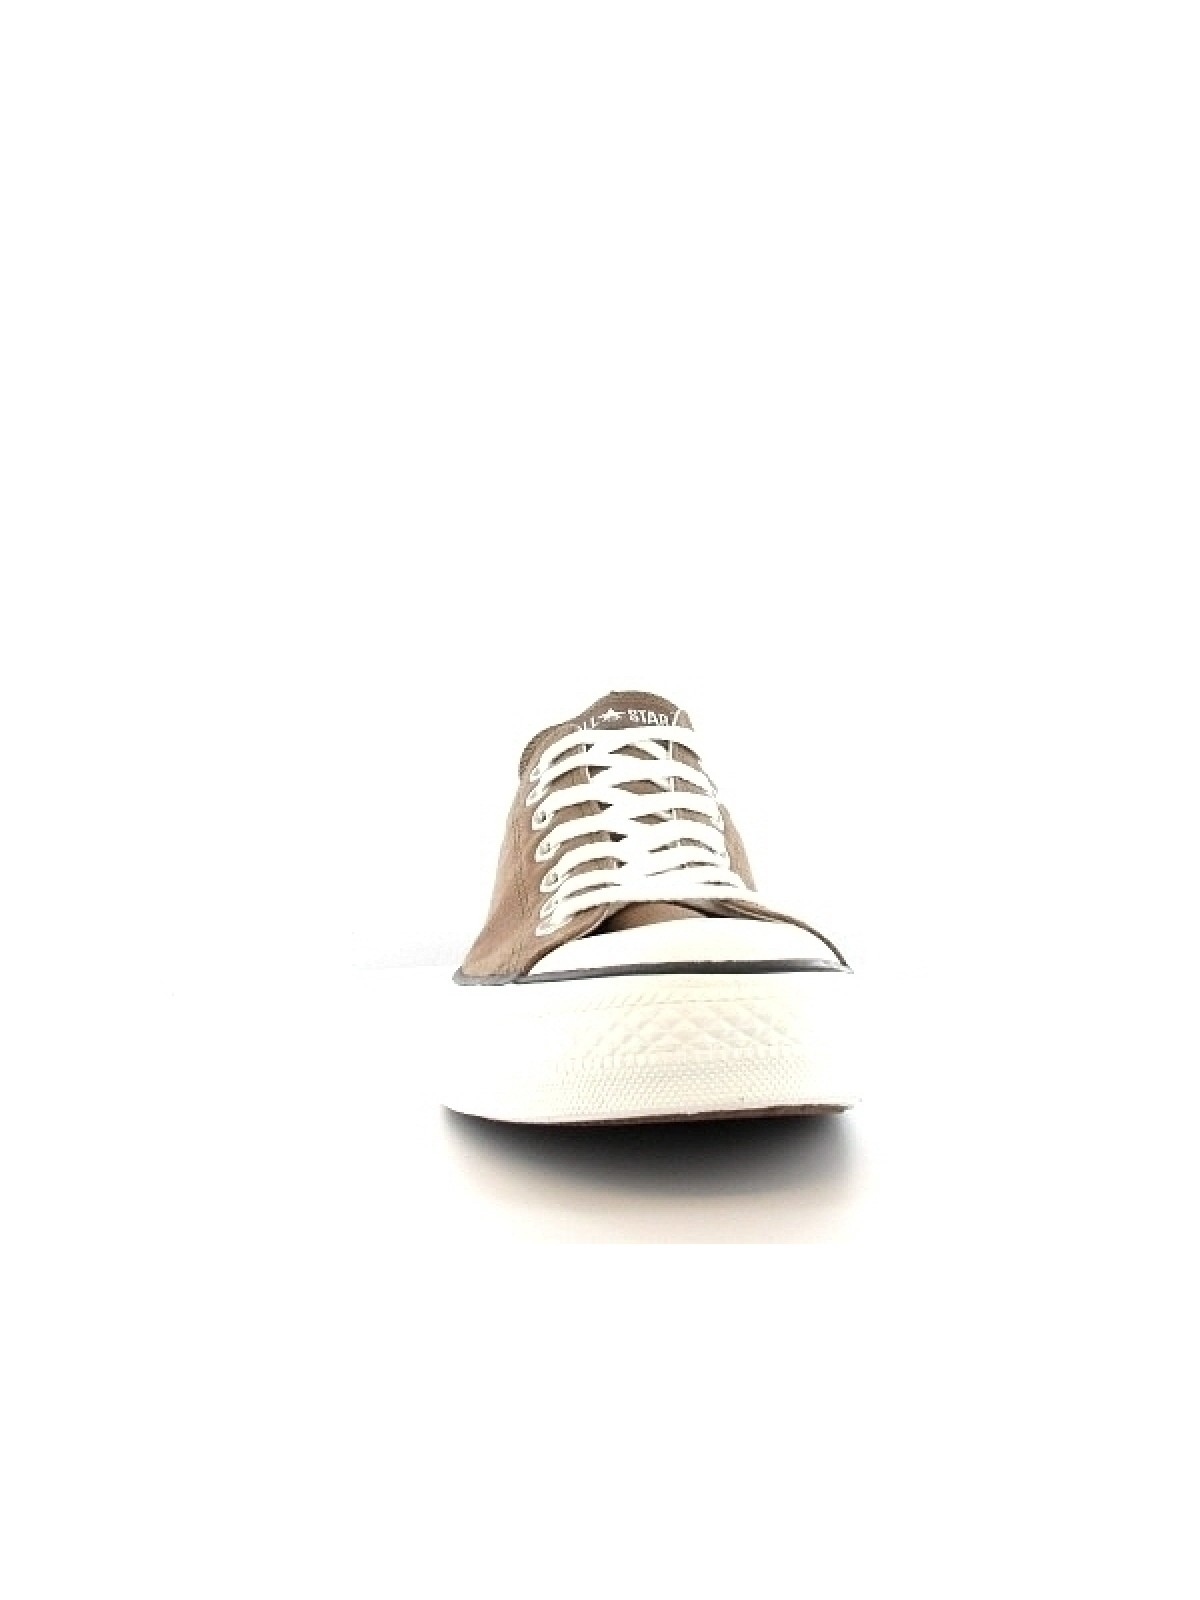 c2b6acc92bf Converse Chuck Taylor all star toile basse beige foncé